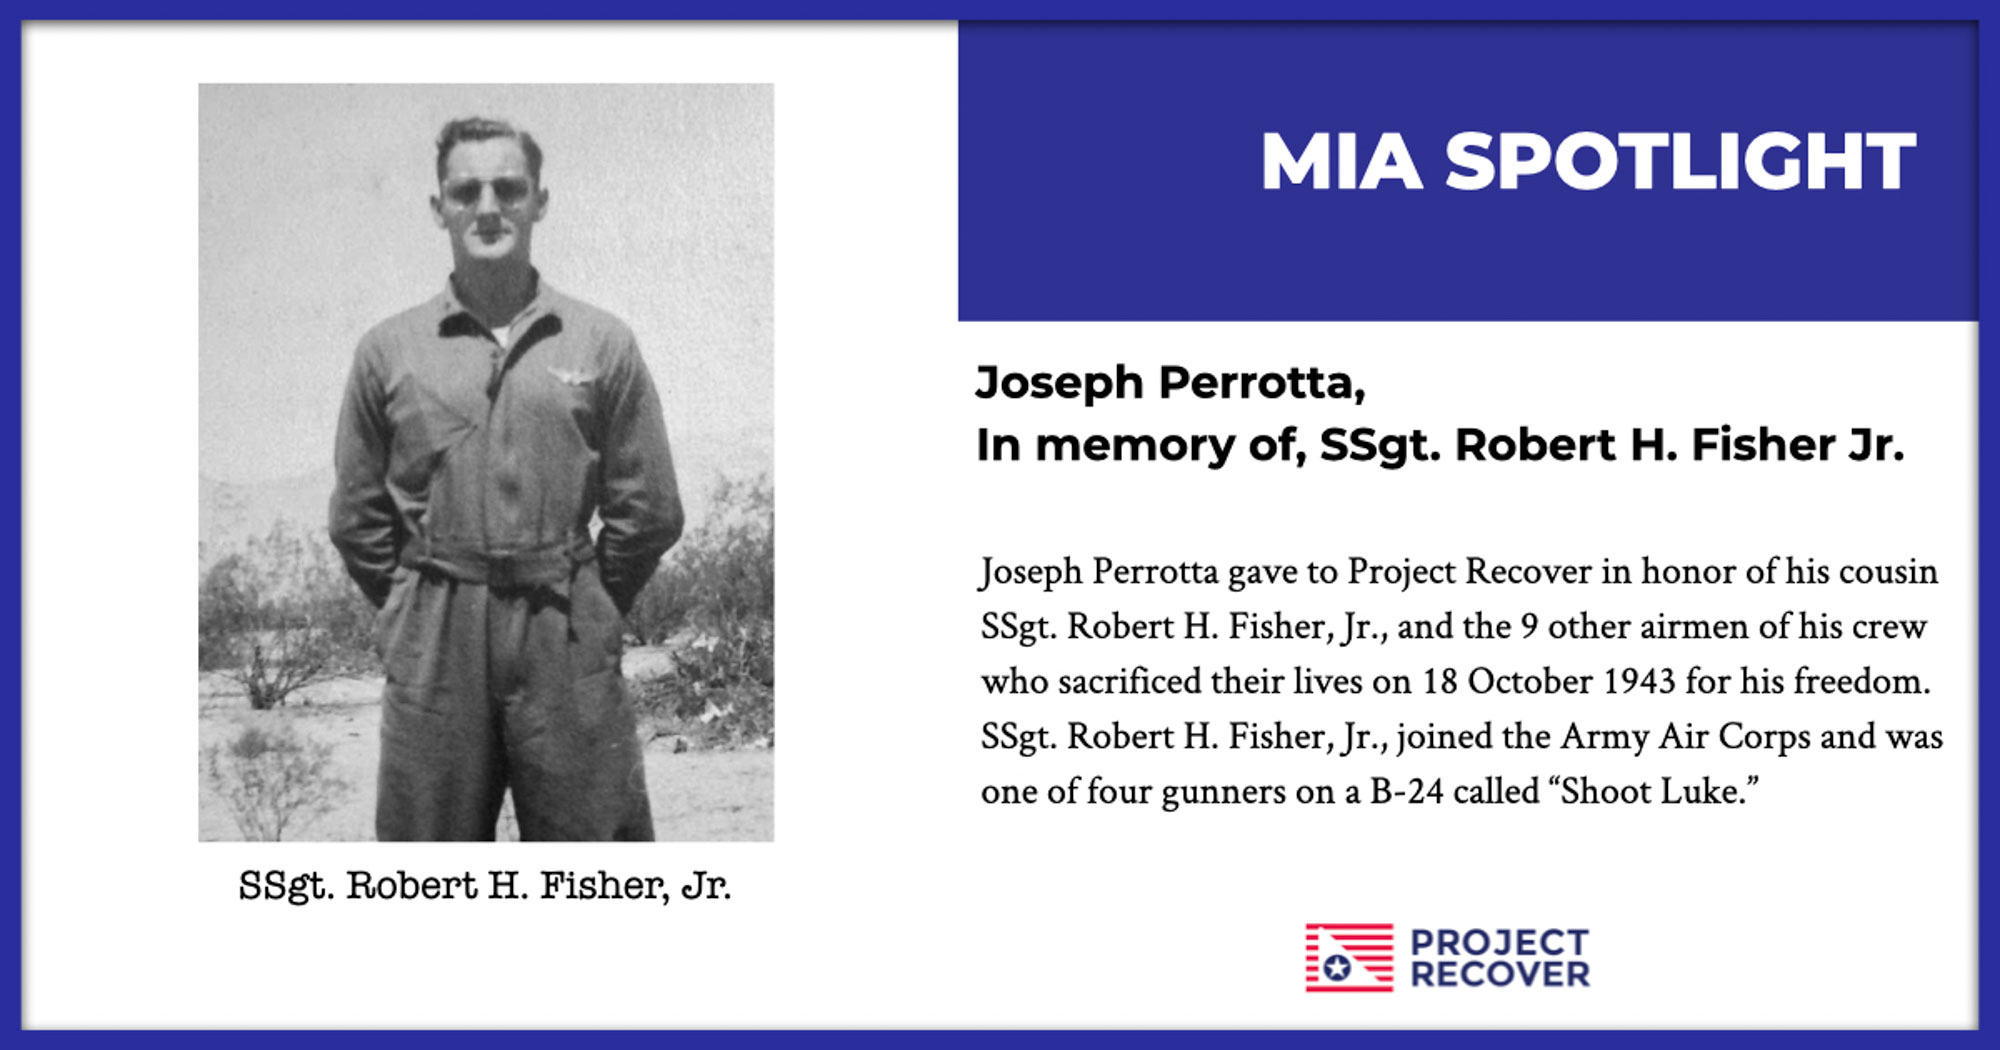 Feature image of WWII SSgt. Rober H. Fisher, Jr.